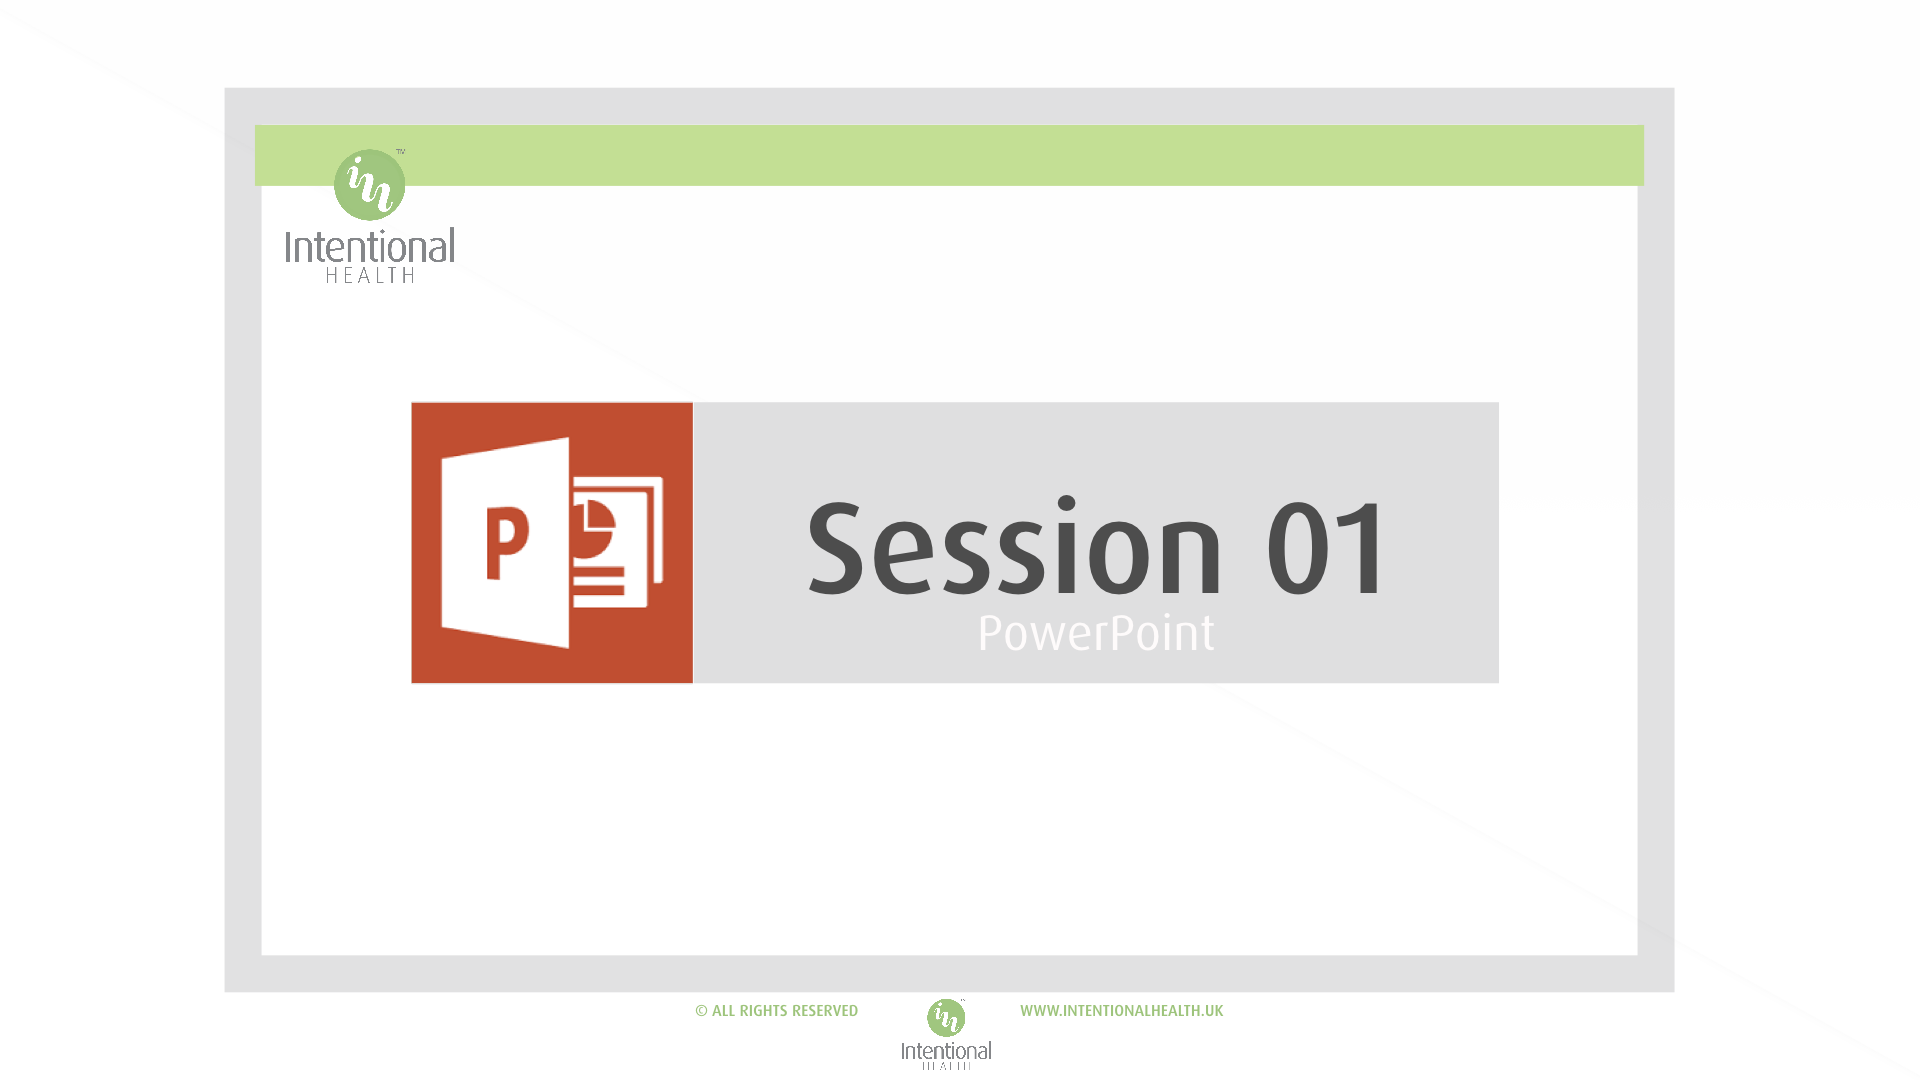 Session 01 Powerpoint